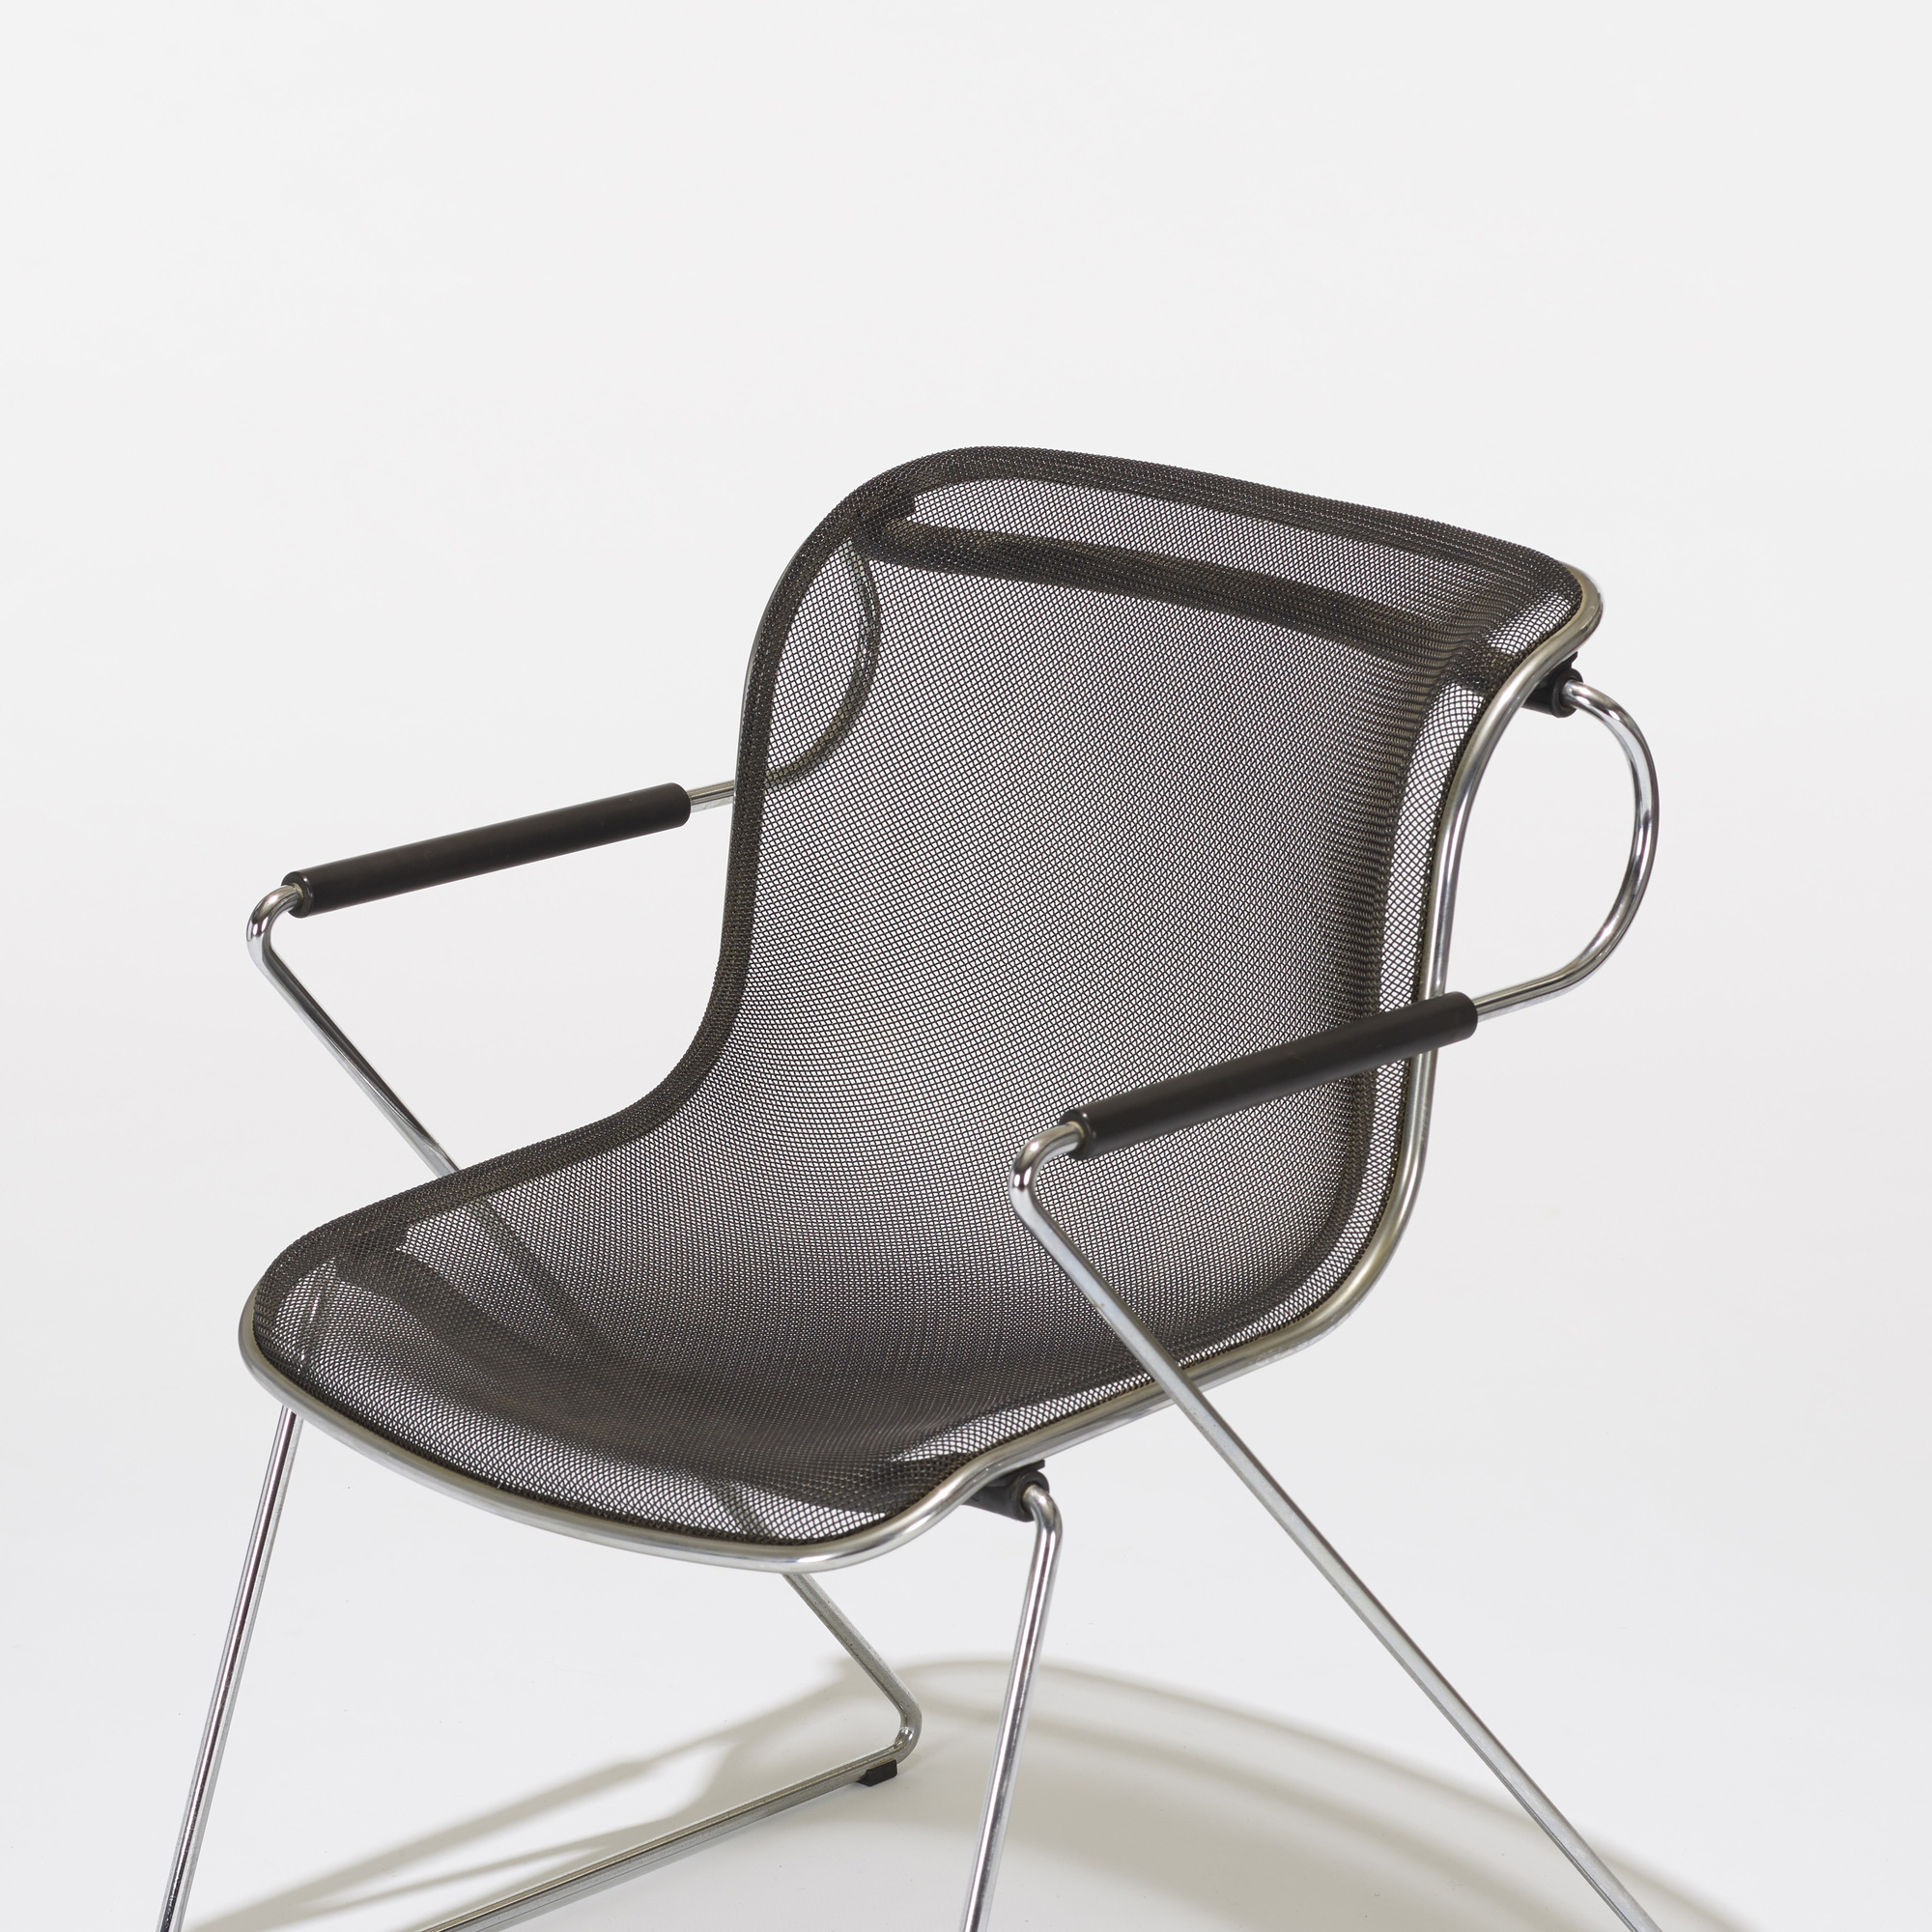 434: Charles Pollock / Penelope chair (3 of 3)